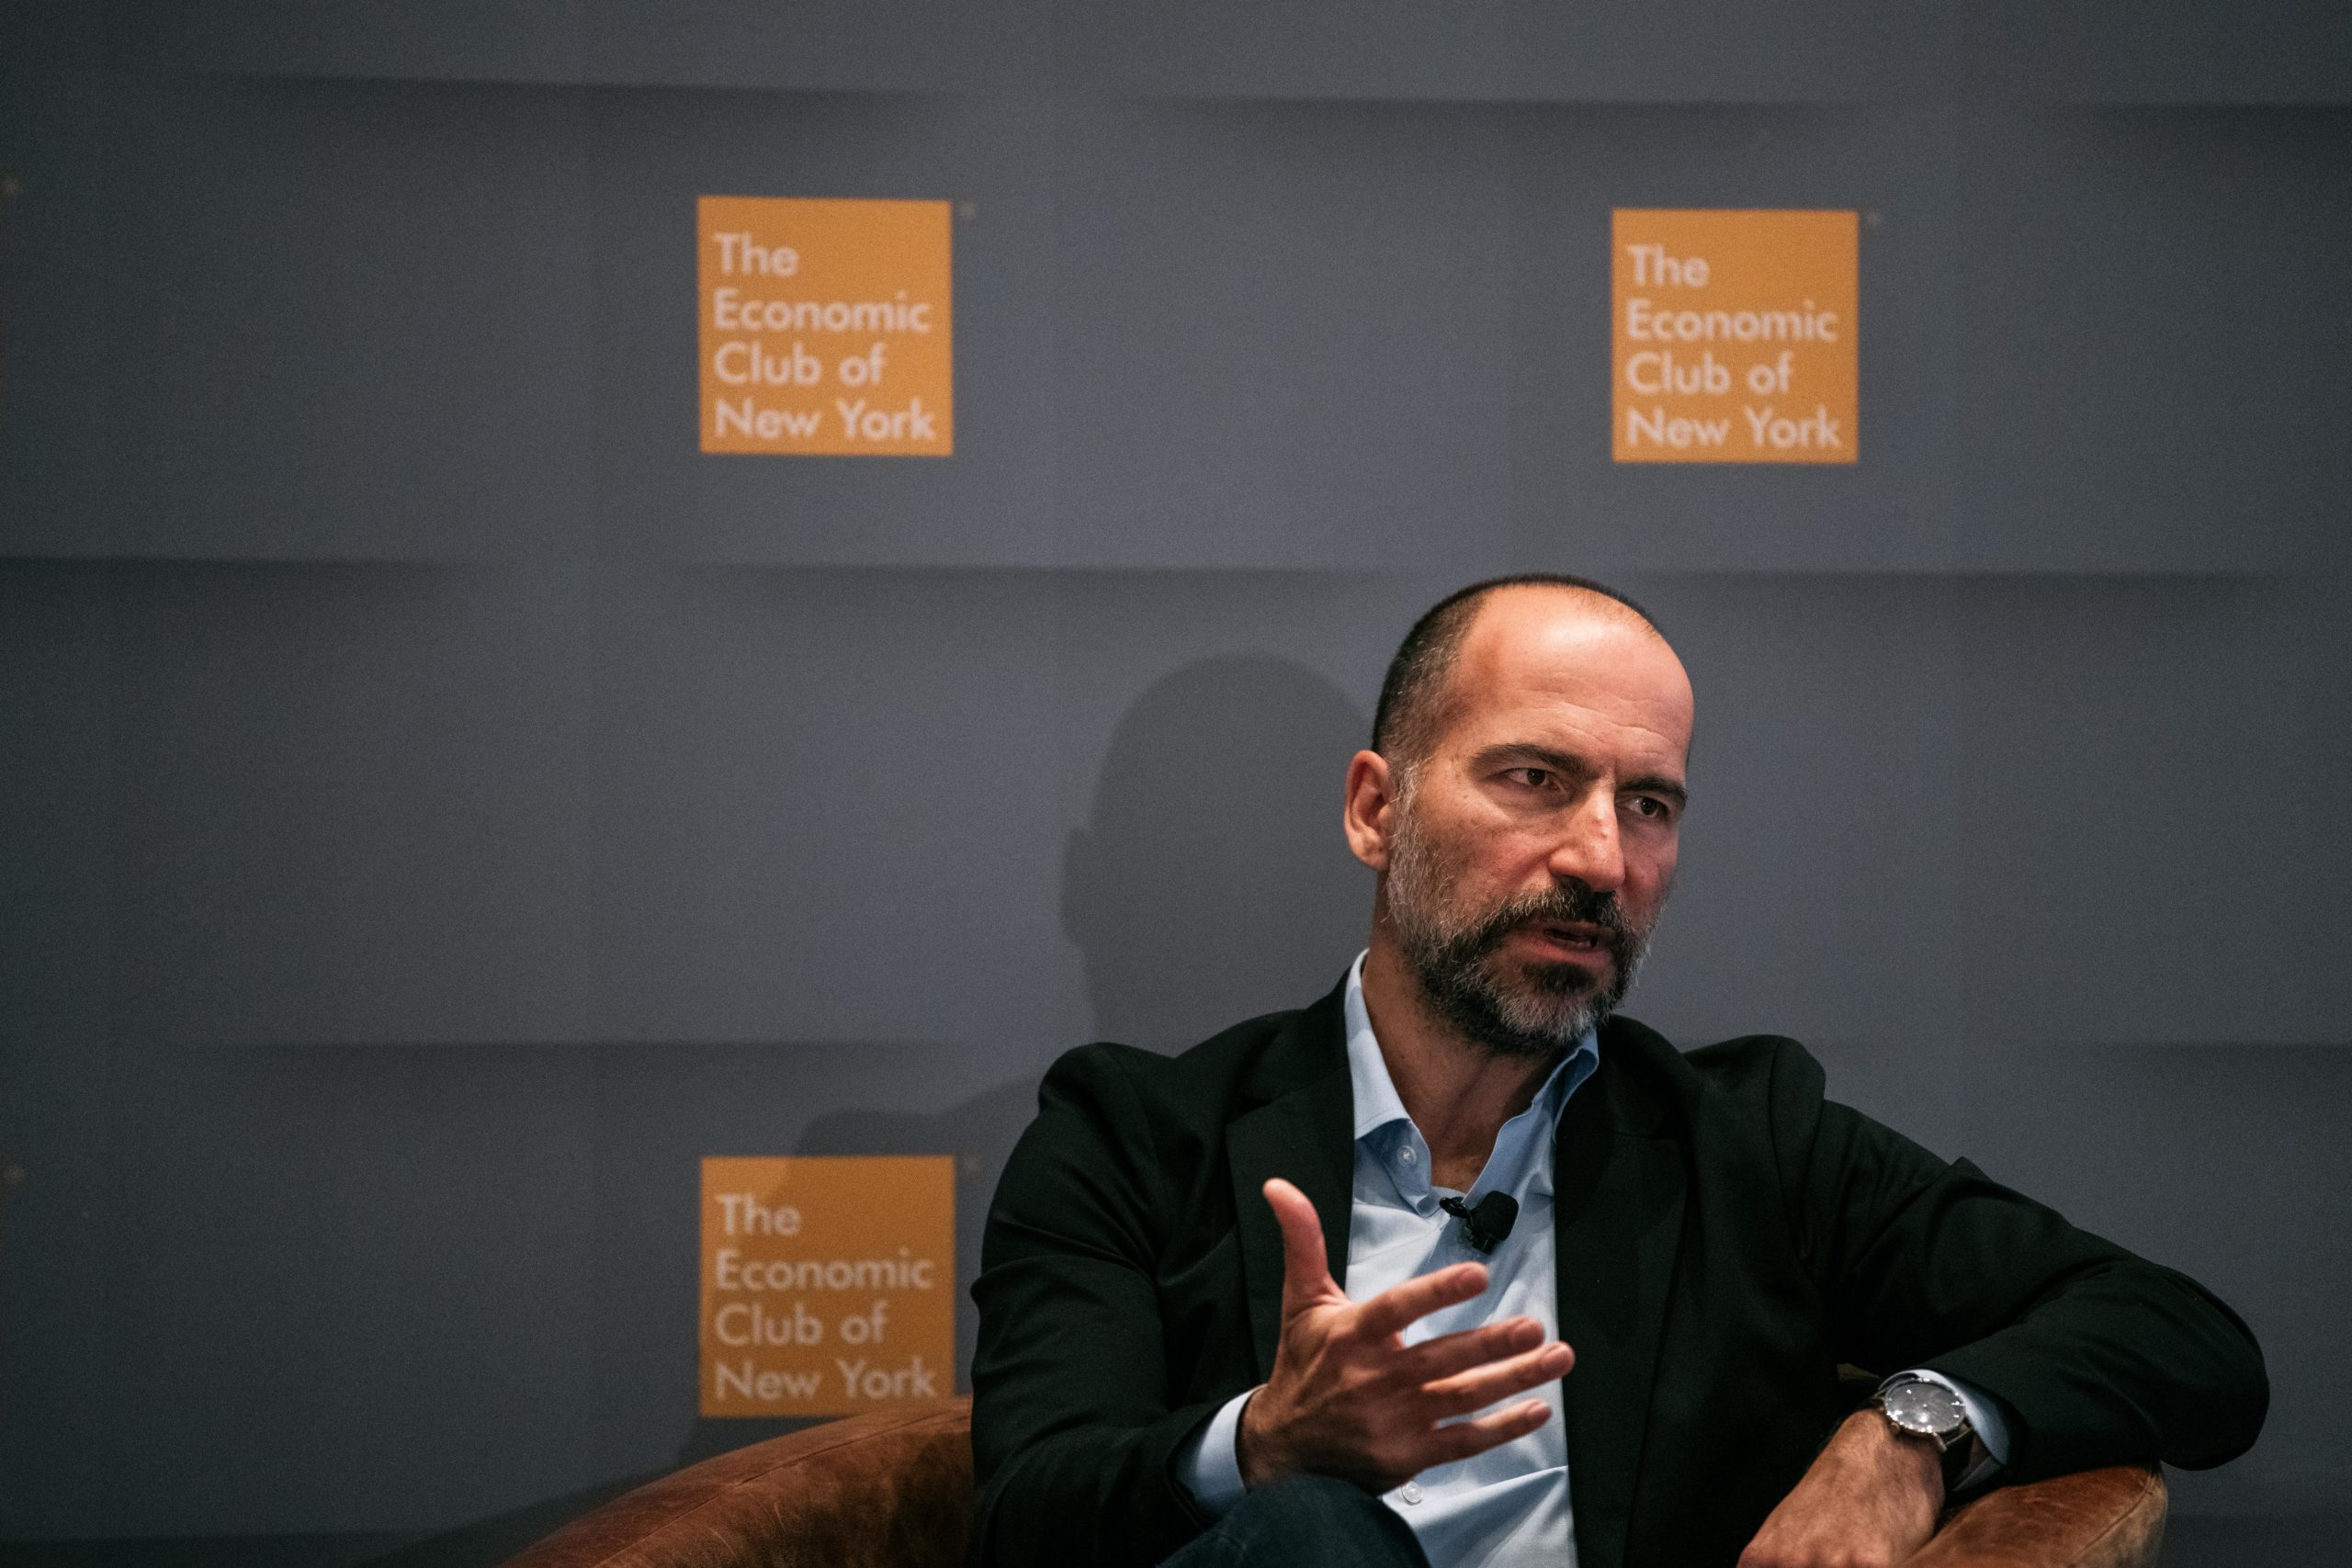 Uber CEO Dara Khosrowshahi speaks at a meeting of the Economic Club of New York in 2019. (Scott Heins/Getty Images)